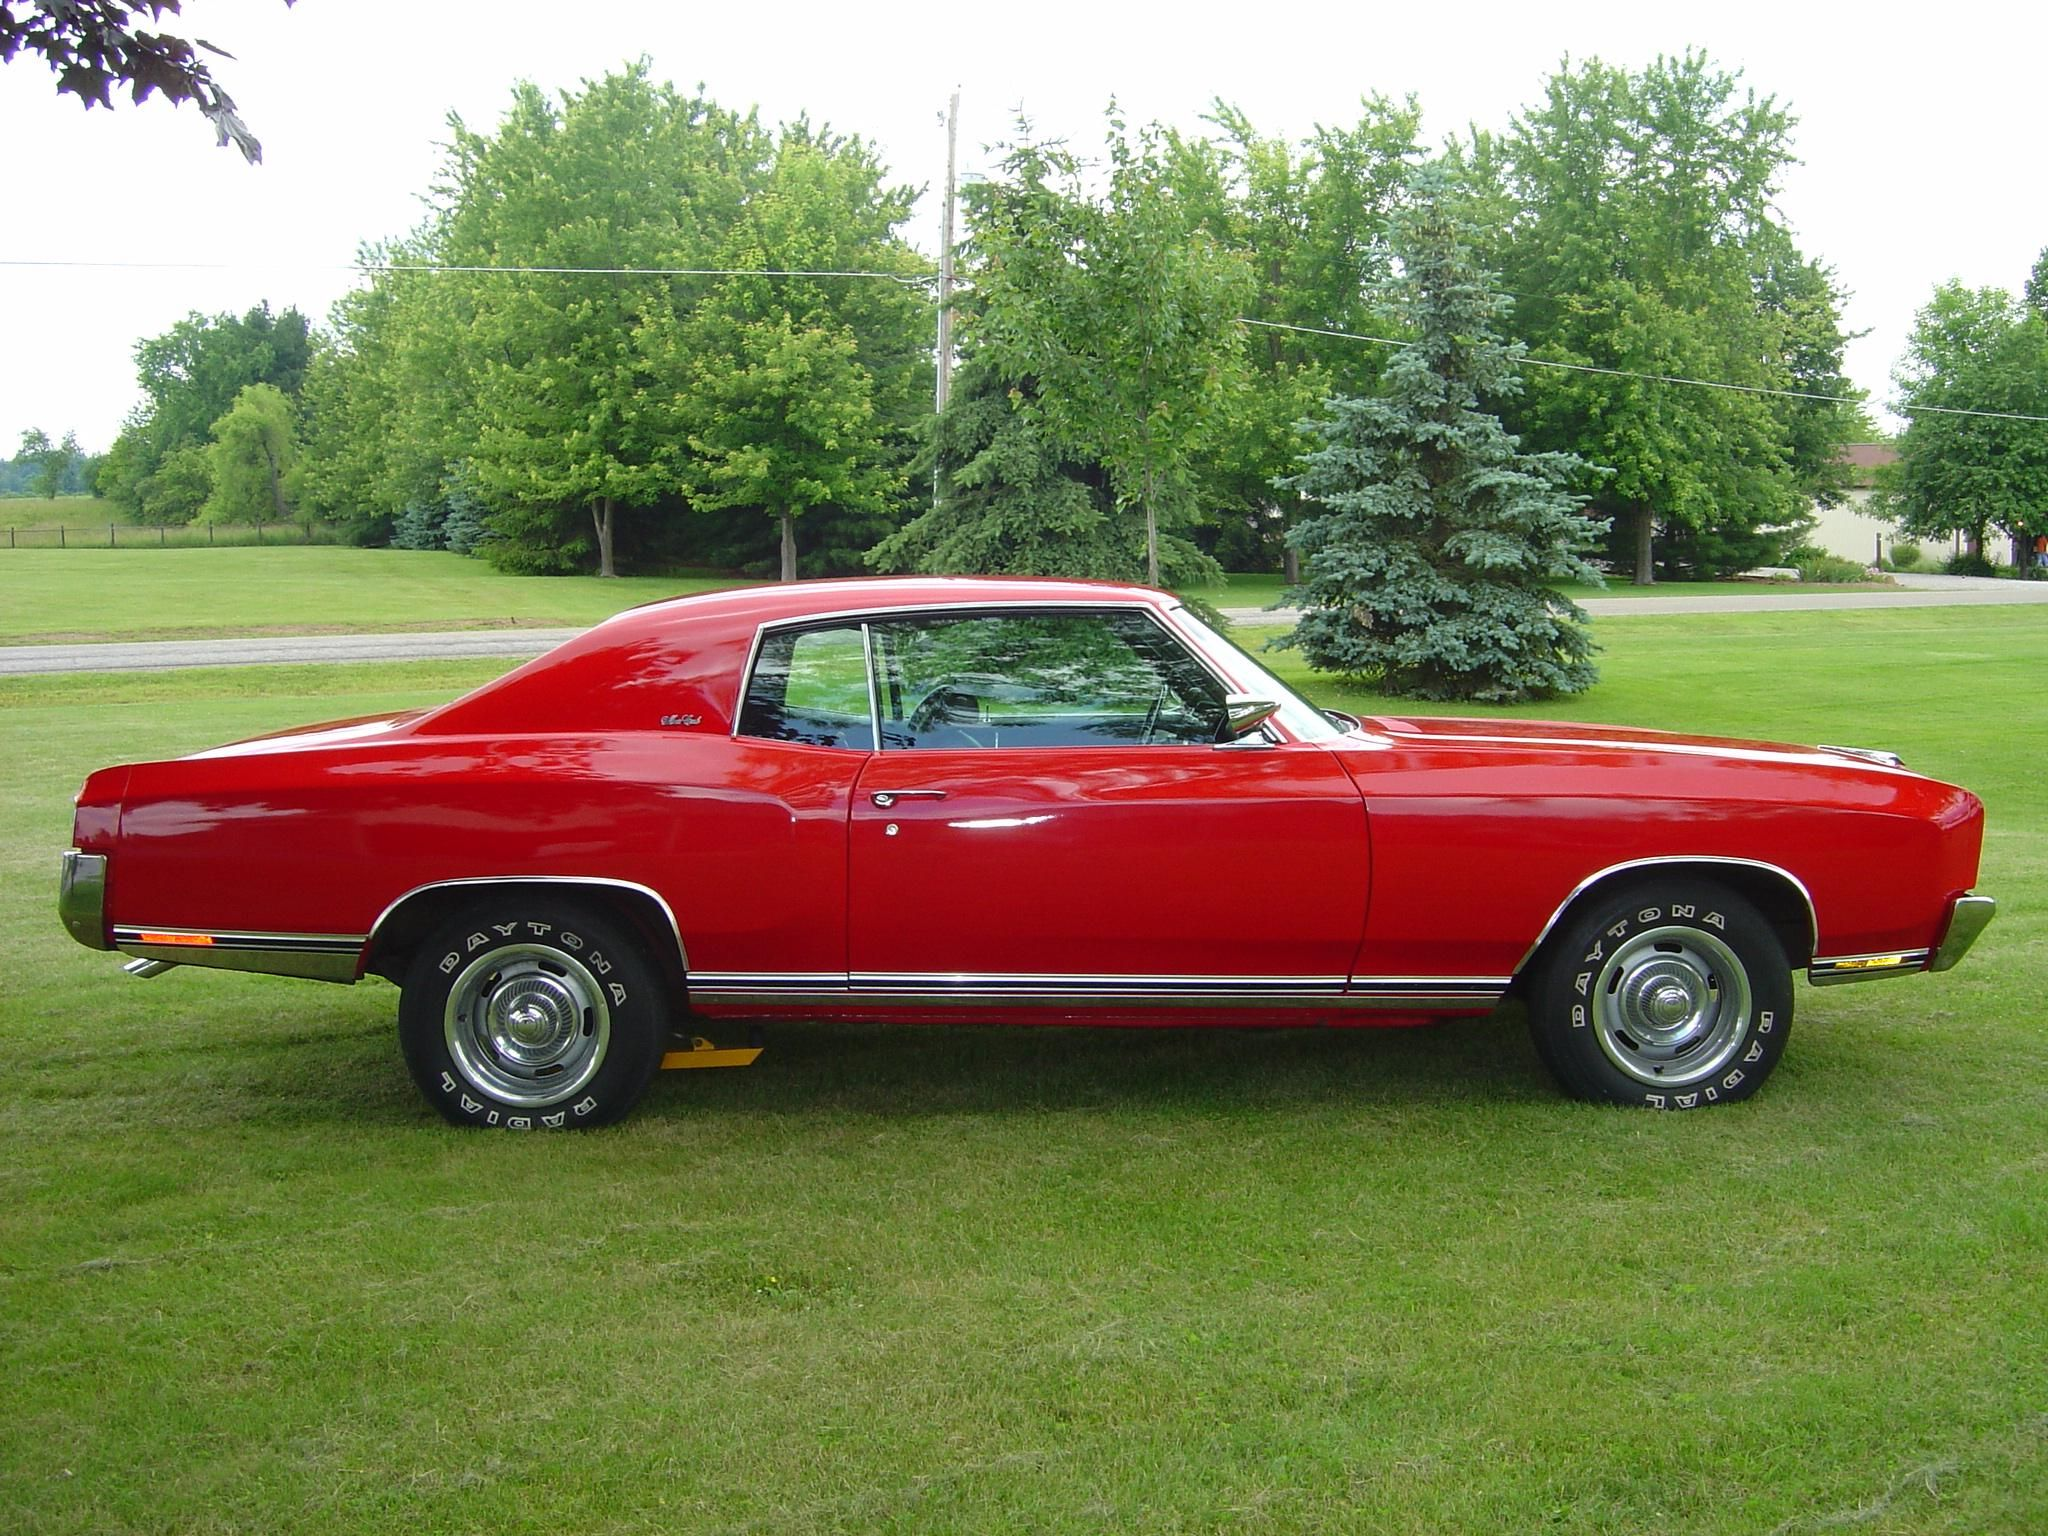 Autotrader Classics 1972 Chevrolet Monte Carlo Coupe Red 8 Cy Http Www A2zoffer Com Chevrolet Monte Carlo Classic Cars Trucks Hot Rods Monte Carlo